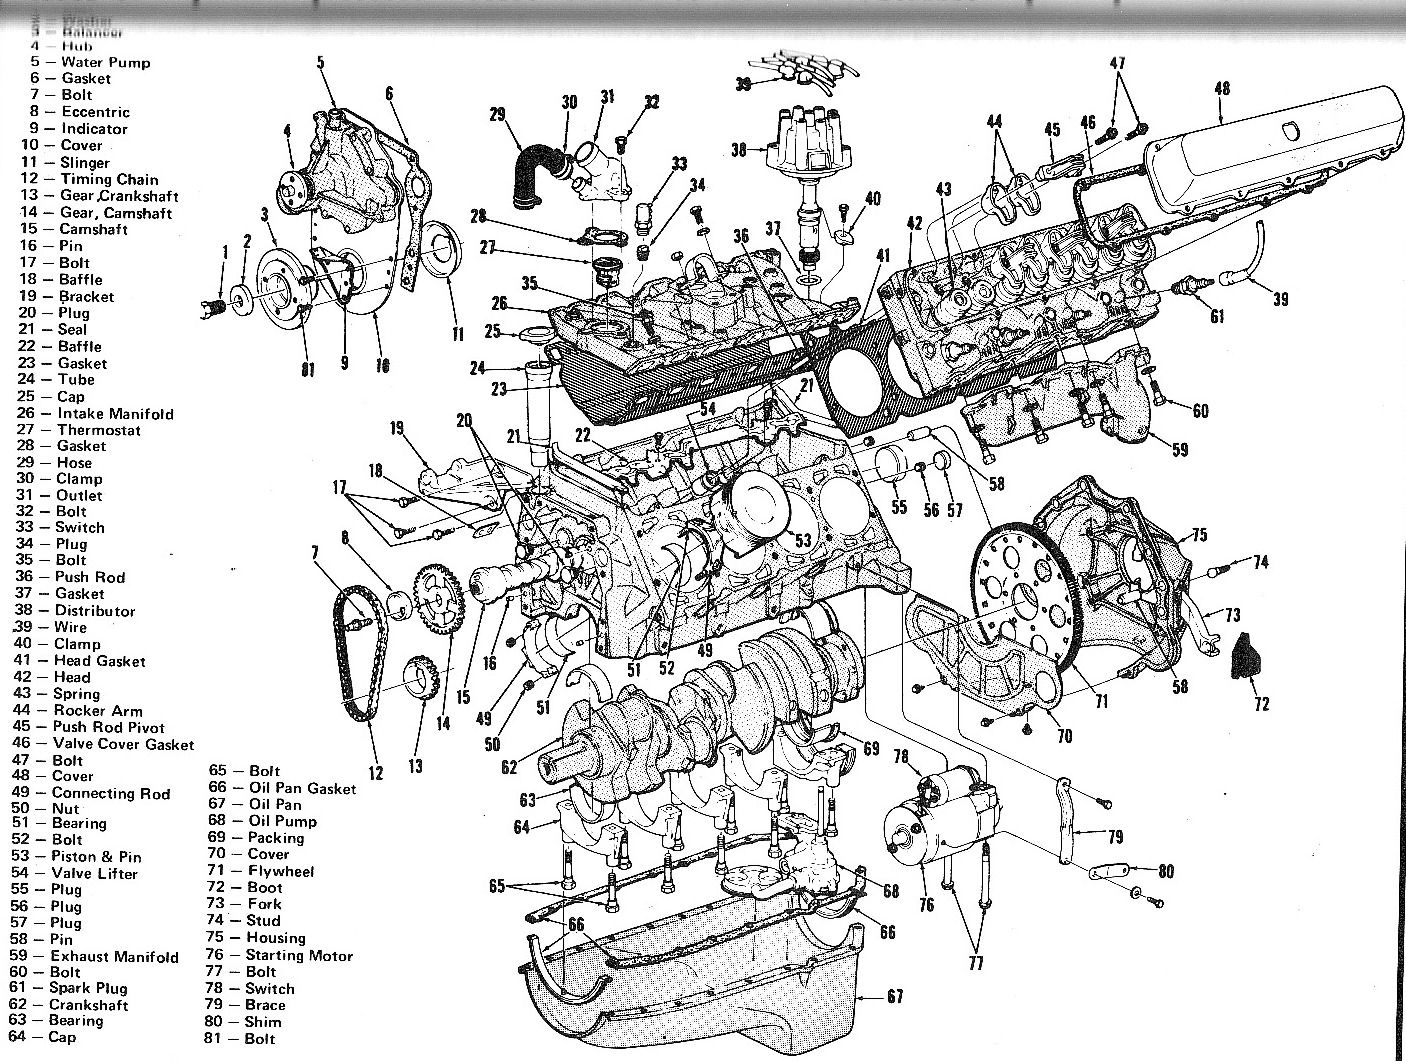 Complete V-8 Engine Diagram Car Stuff, Diagram, Mustang, Chevy, Cars